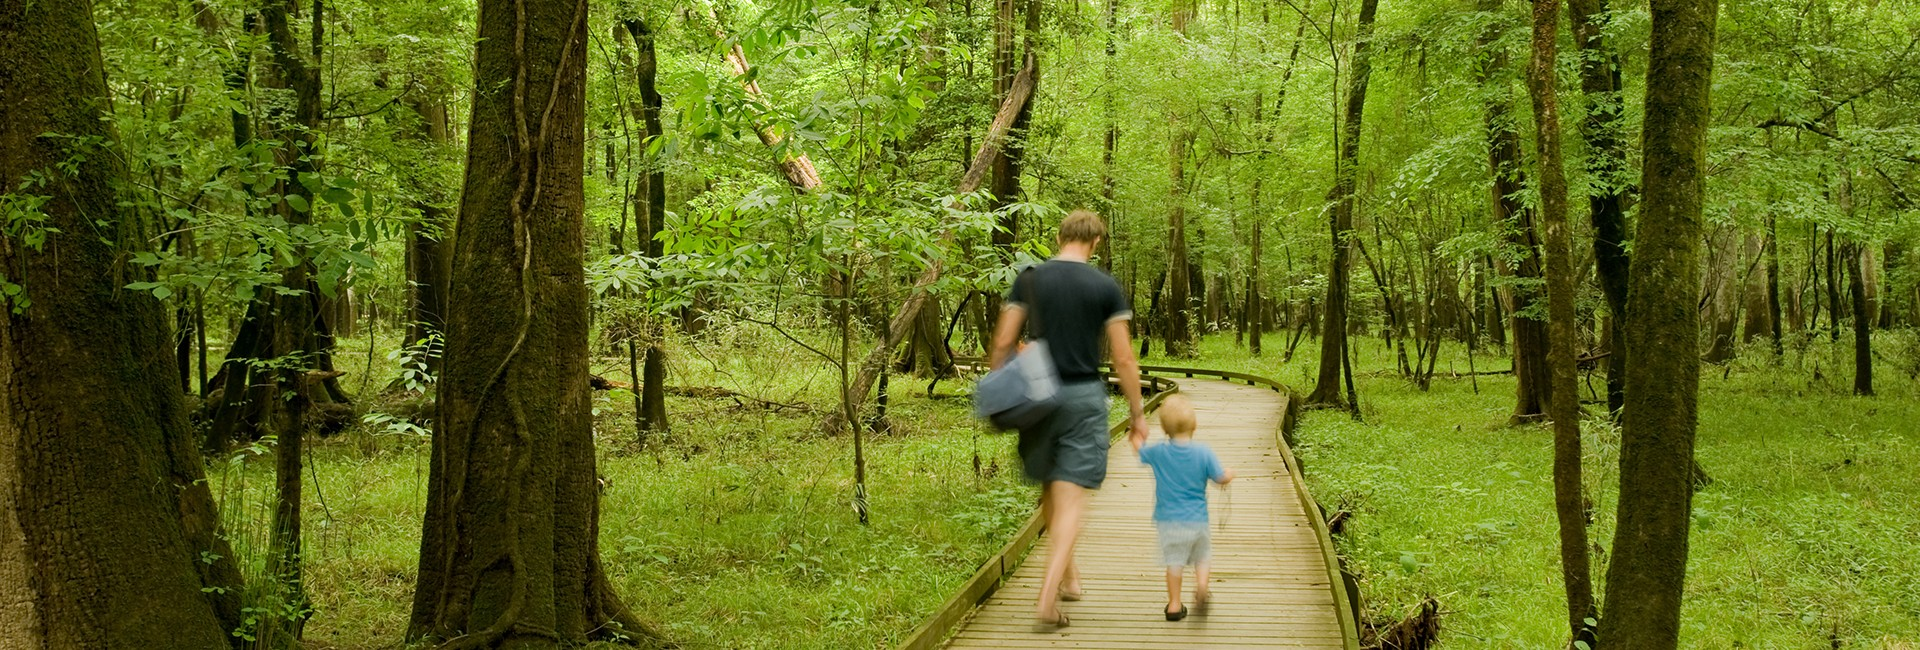 Hiking in Congaree National Park in Hopkins, SC